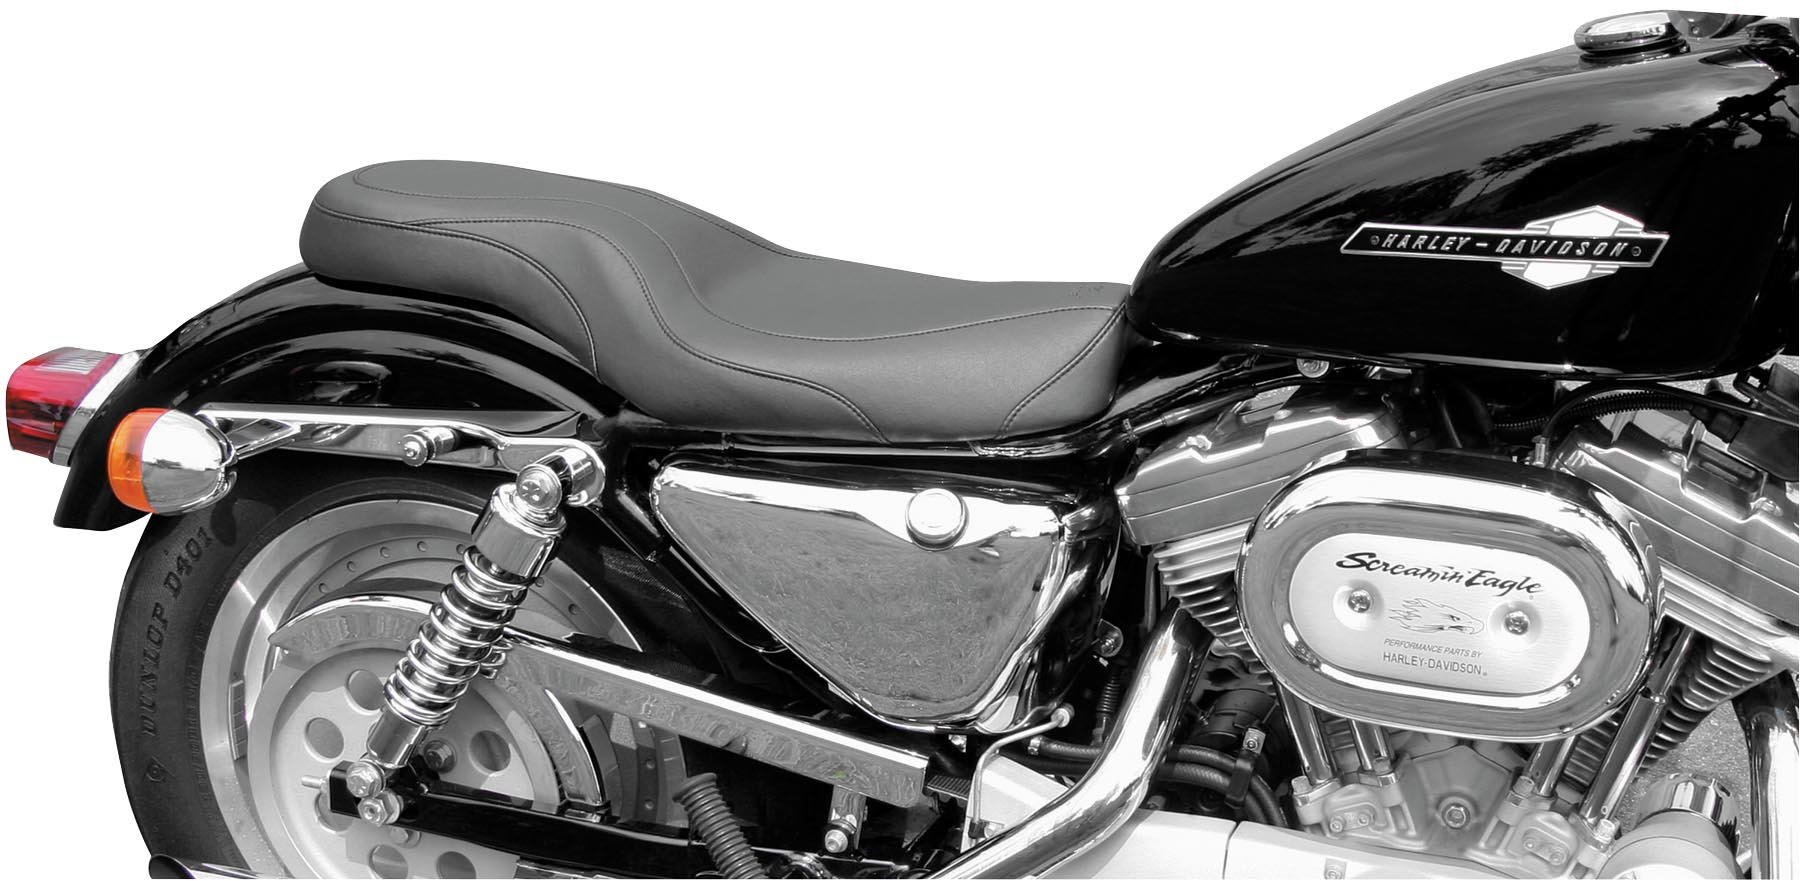 Mustang Daytripper Seat for 1996-2003 Harley Davidson Sportster